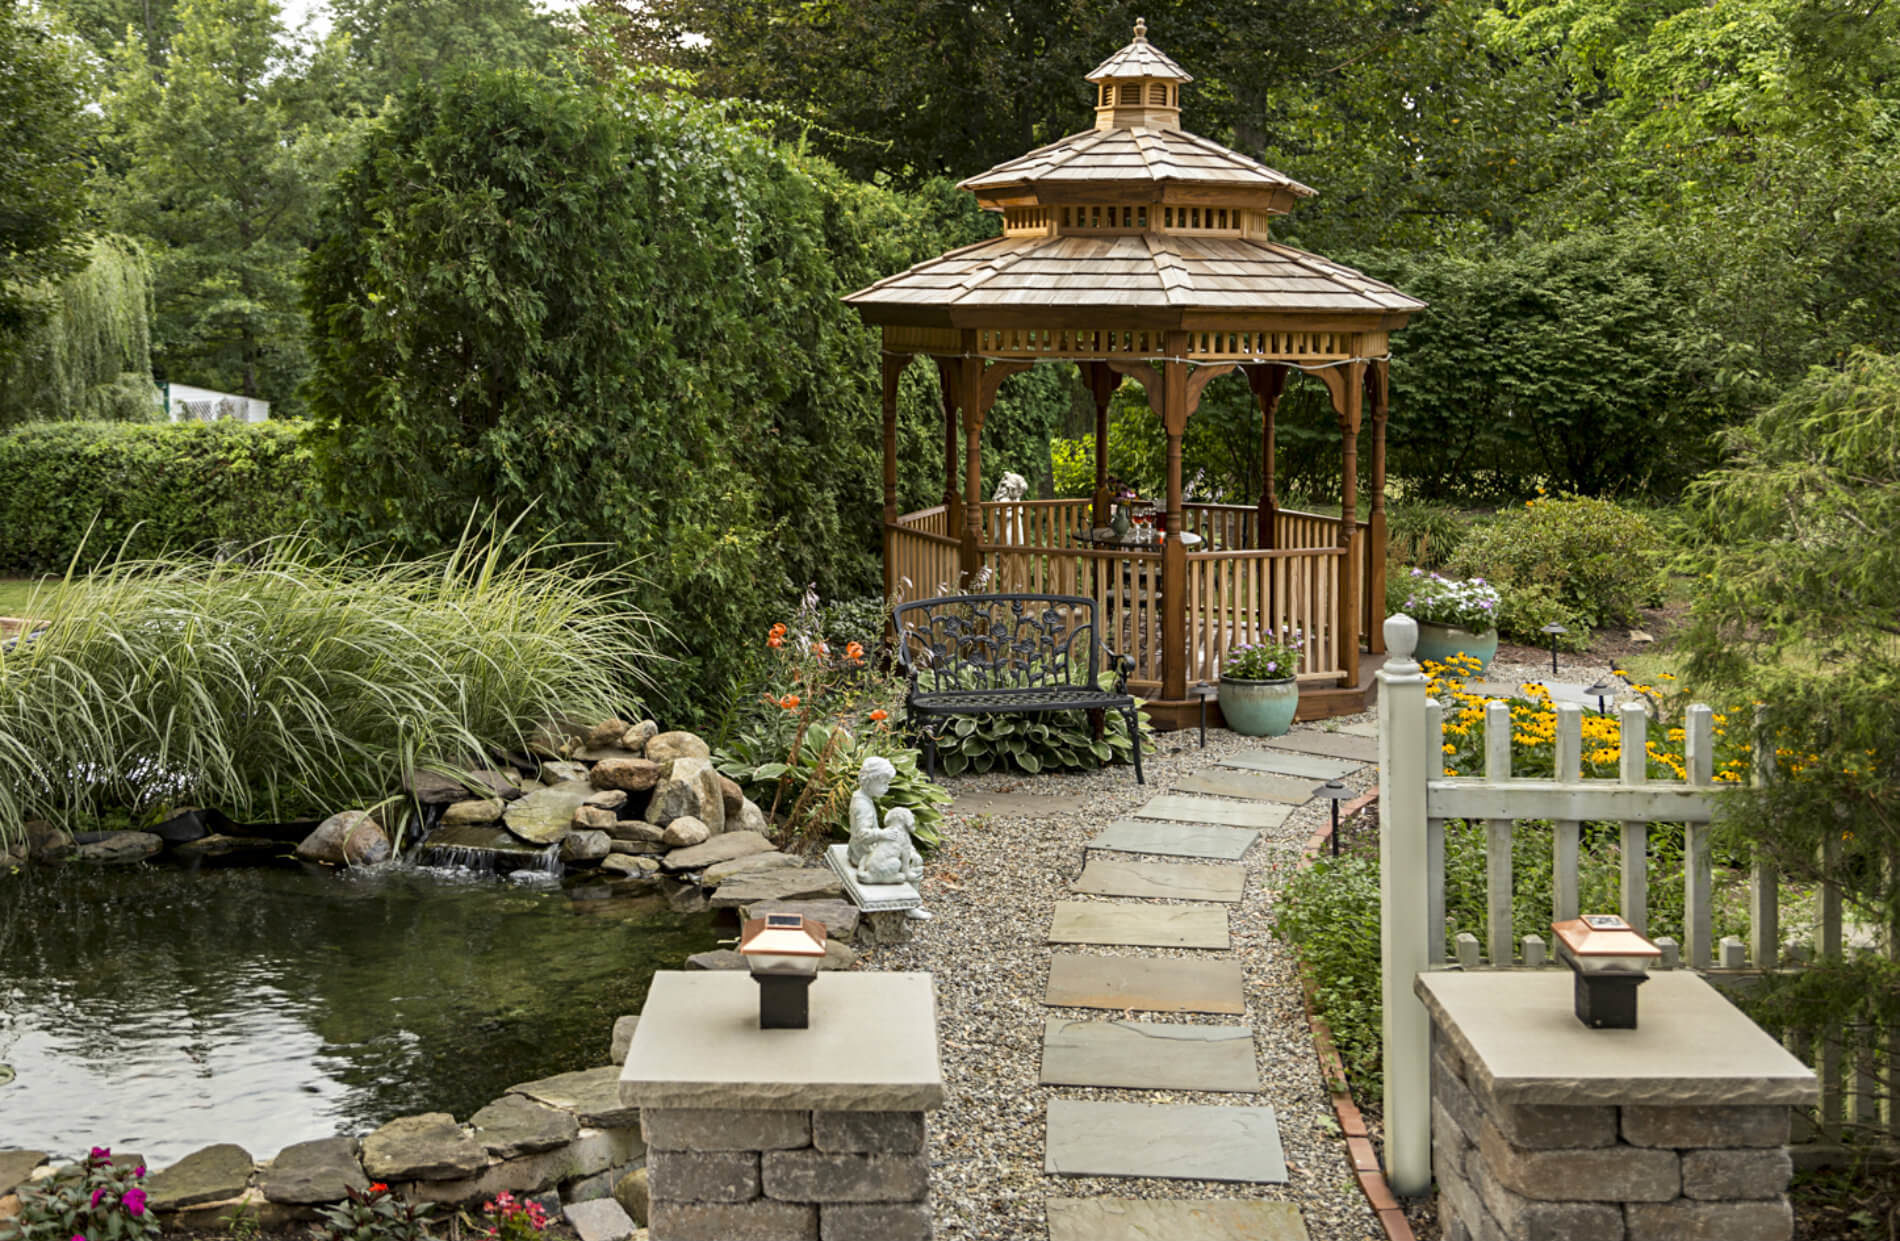 Stone path leading to wooden gazebo with green hedge in background